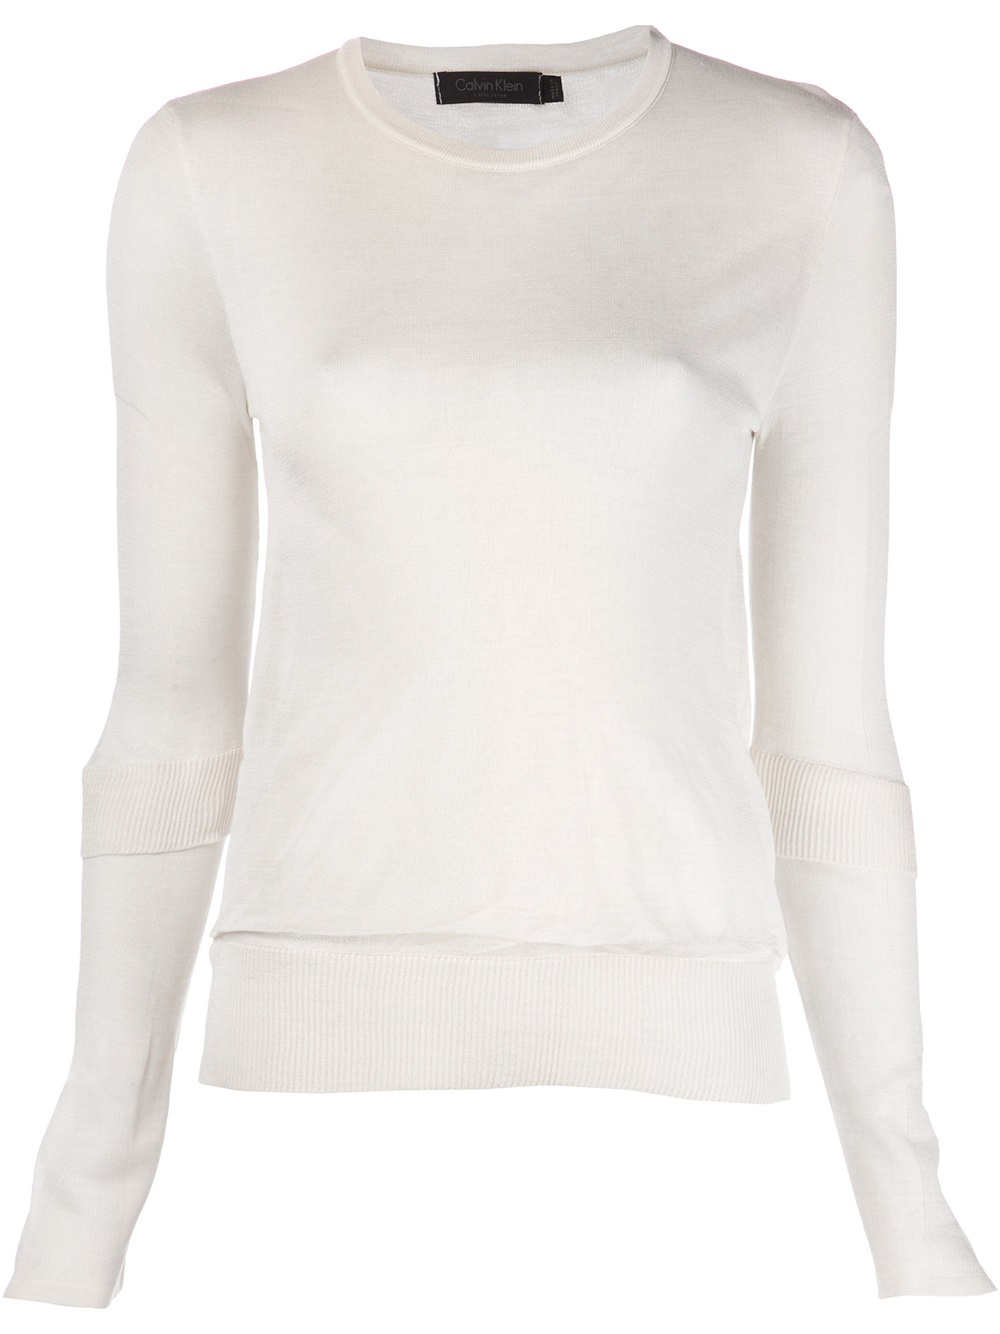 calvin klein pullover sweater in white lyst. Black Bedroom Furniture Sets. Home Design Ideas